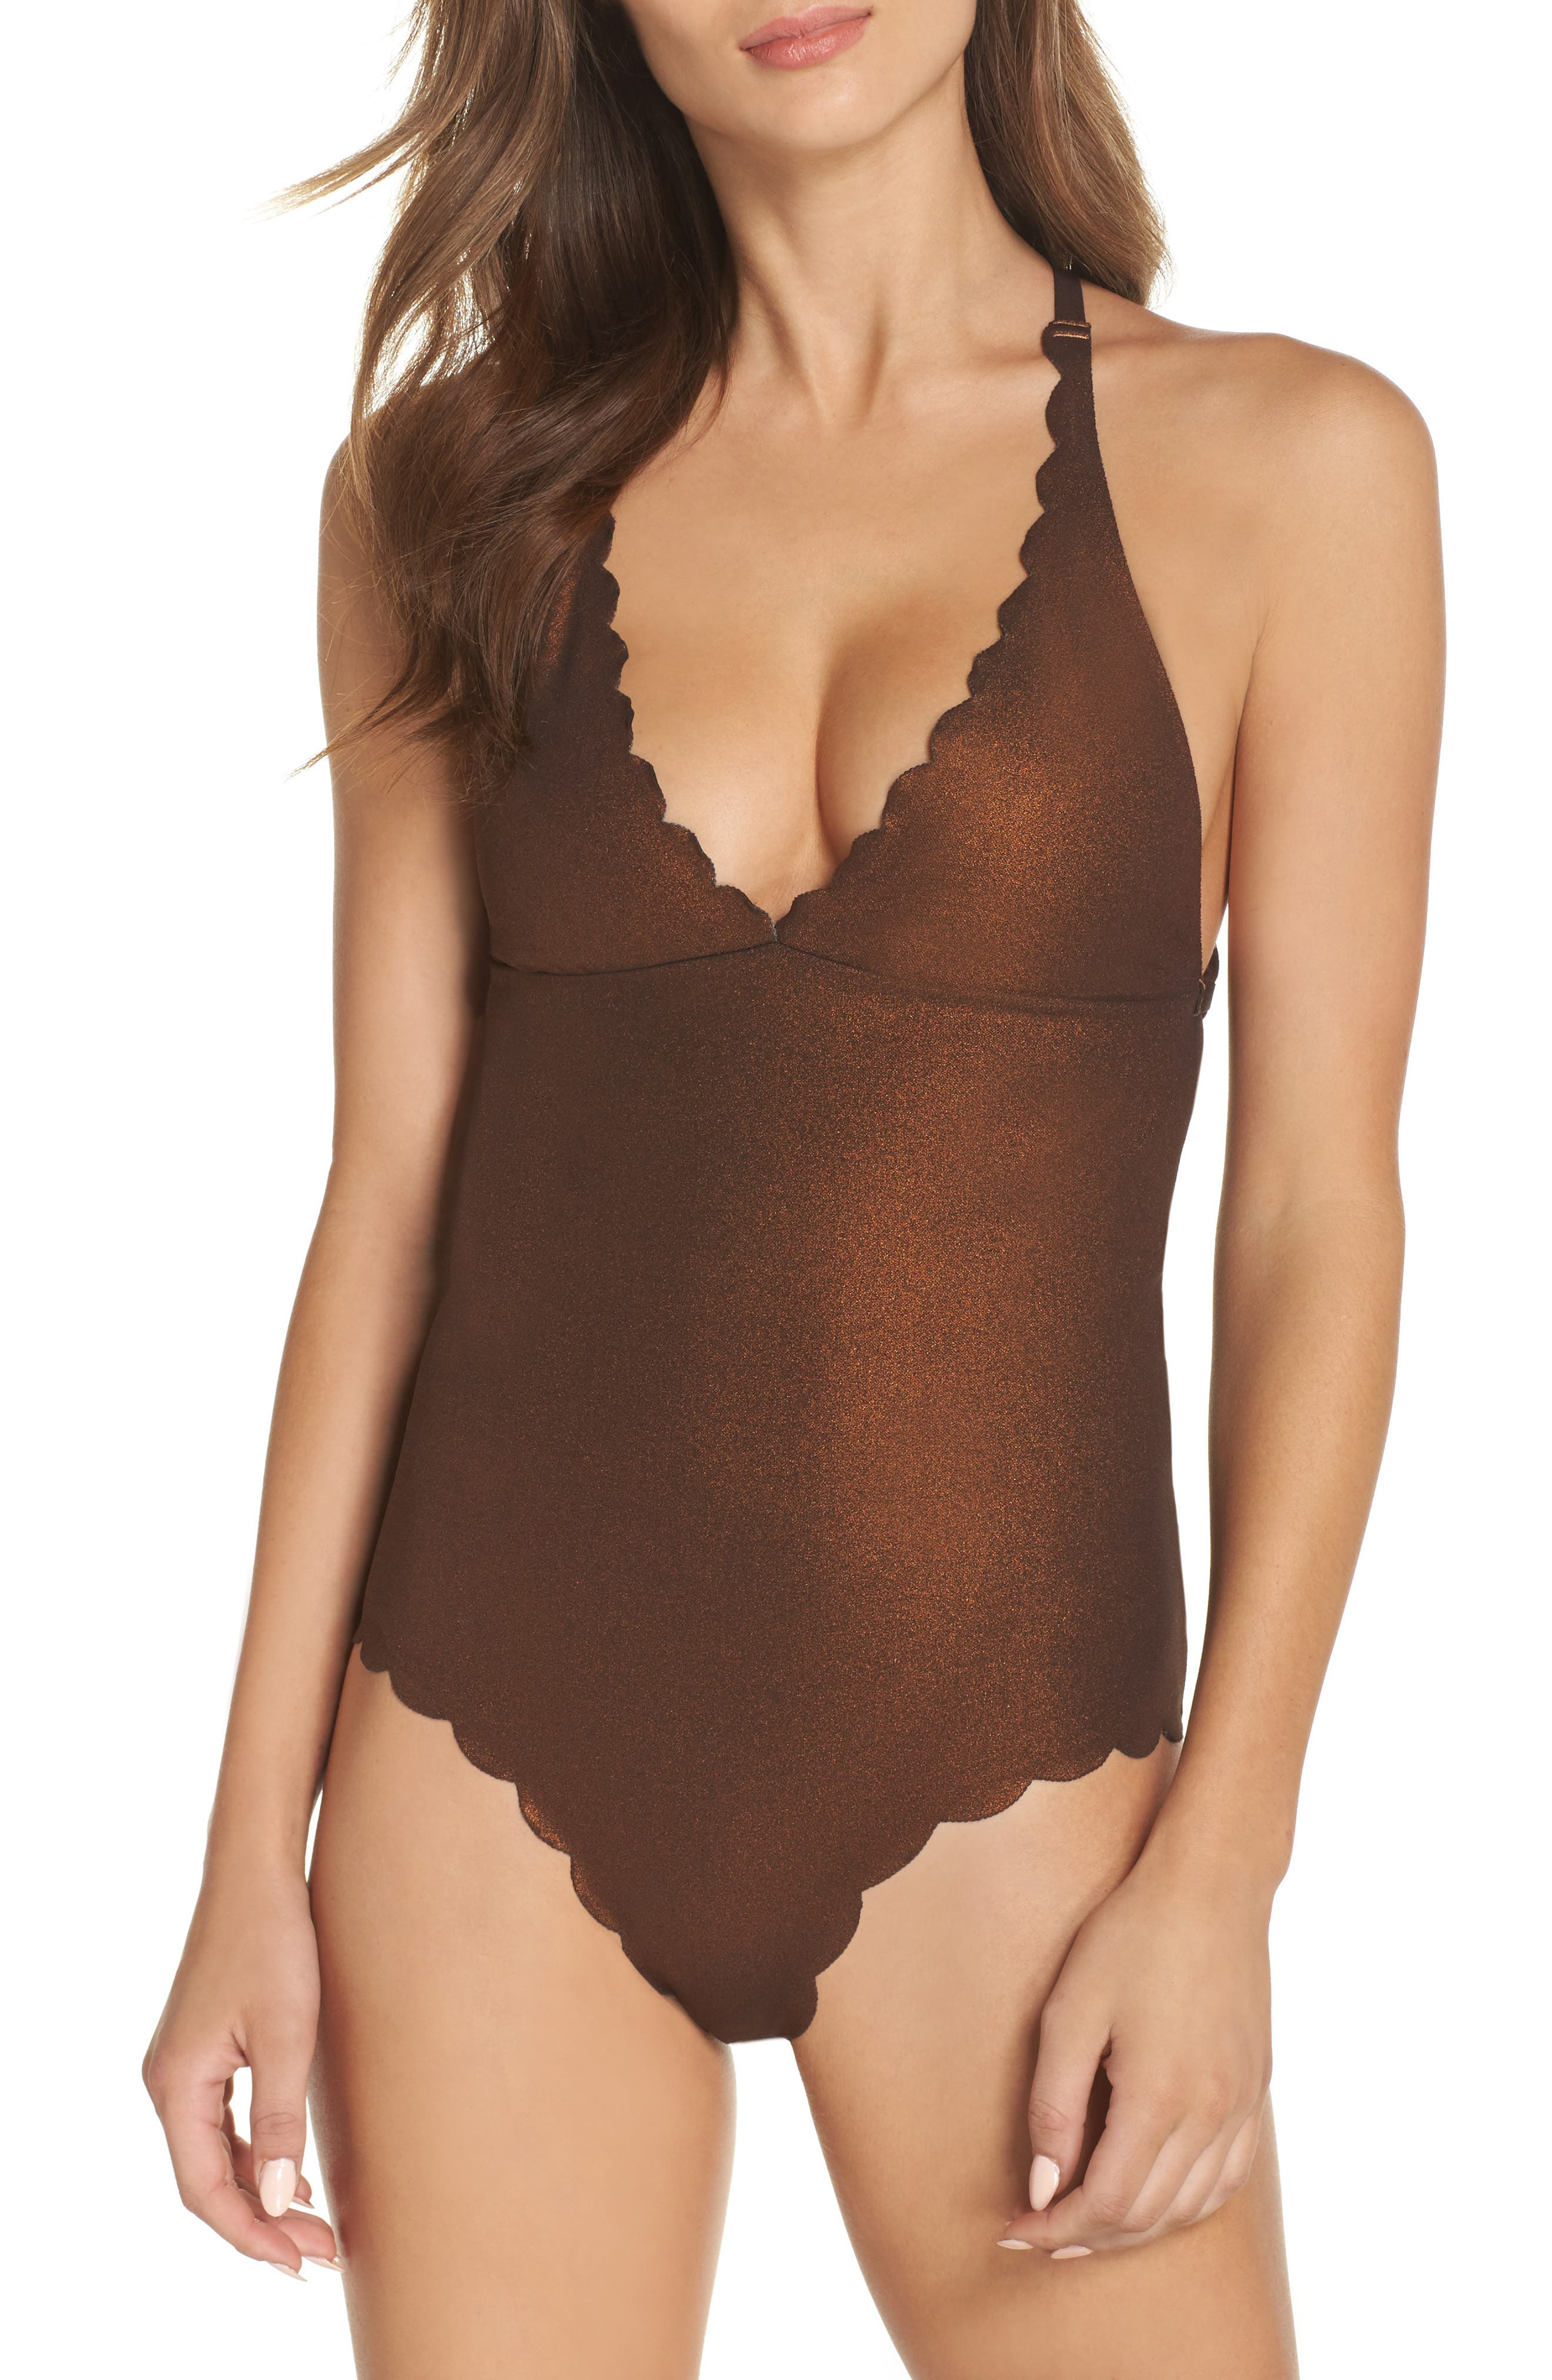 PilyQ Wave Reversible Seamless One-Piece Swimsuit